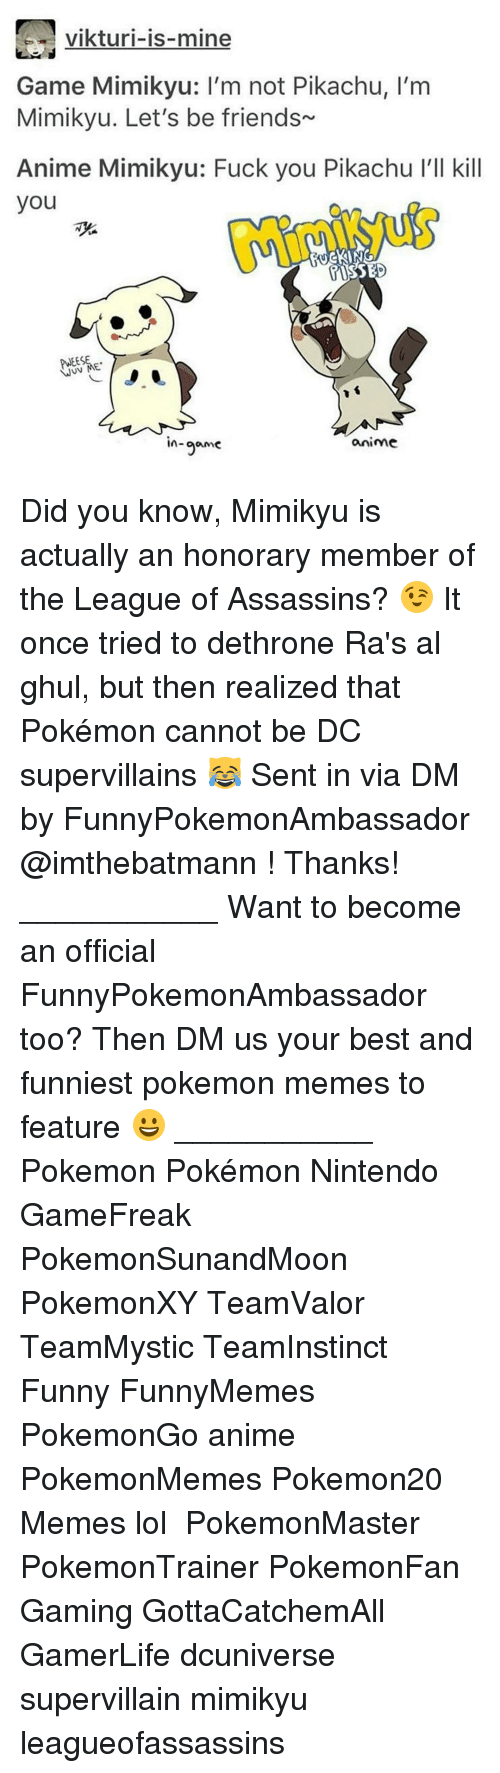 Anime, Friends, and Fuck You: vikturi-is-mine  Game Mimikyu: l'm not Pikachu, l'm  Mimikyu. Let's be friends  Anime Mimikyu: Fuck you Pikachu l'll kill  you  TASSED  WUV ME  anime  In  game Did you know, Mimikyu is actually an honorary member of the League of Assassins? 😉 It once tried to dethrone Ra's al ghul, but then realized that Pokémon cannot be DC supervillains 😹 Sent in via DM by FunnyPokemonAmbassador @imthebatmann ! Thanks! ___________ Want to become an official FunnyPokemonAmbassador too? Then DM us your best and funniest pokemon memes to feature 😀 ___________ Pokemon Pokémon Nintendo GameFreak PokemonSunandMoon PokemonXY TeamValor TeamMystic TeamInstinct Funny FunnyMemes PokemonGo anime PokemonMemes Pokemon20 Memes lol ポケットモンスター PokemonMaster PokemonTrainer PokemonFan Gaming GottaCatchemAll GamerLife dcuniverse supervillain mimikyu leagueofassassins